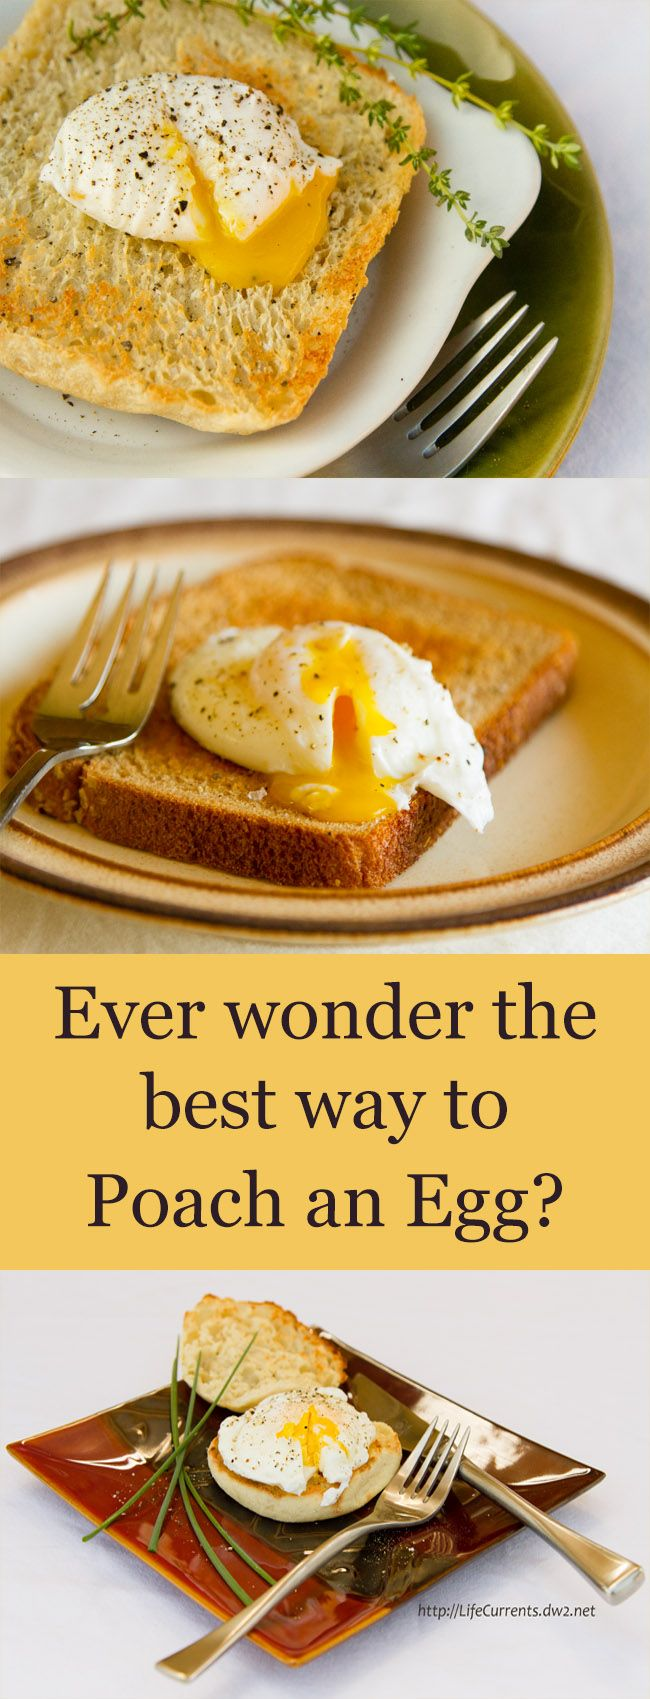 Ever wonder the best way to poach an egg? I tested 5 different methods and review them all for ease, taste, shape, and more. Want to learn more?